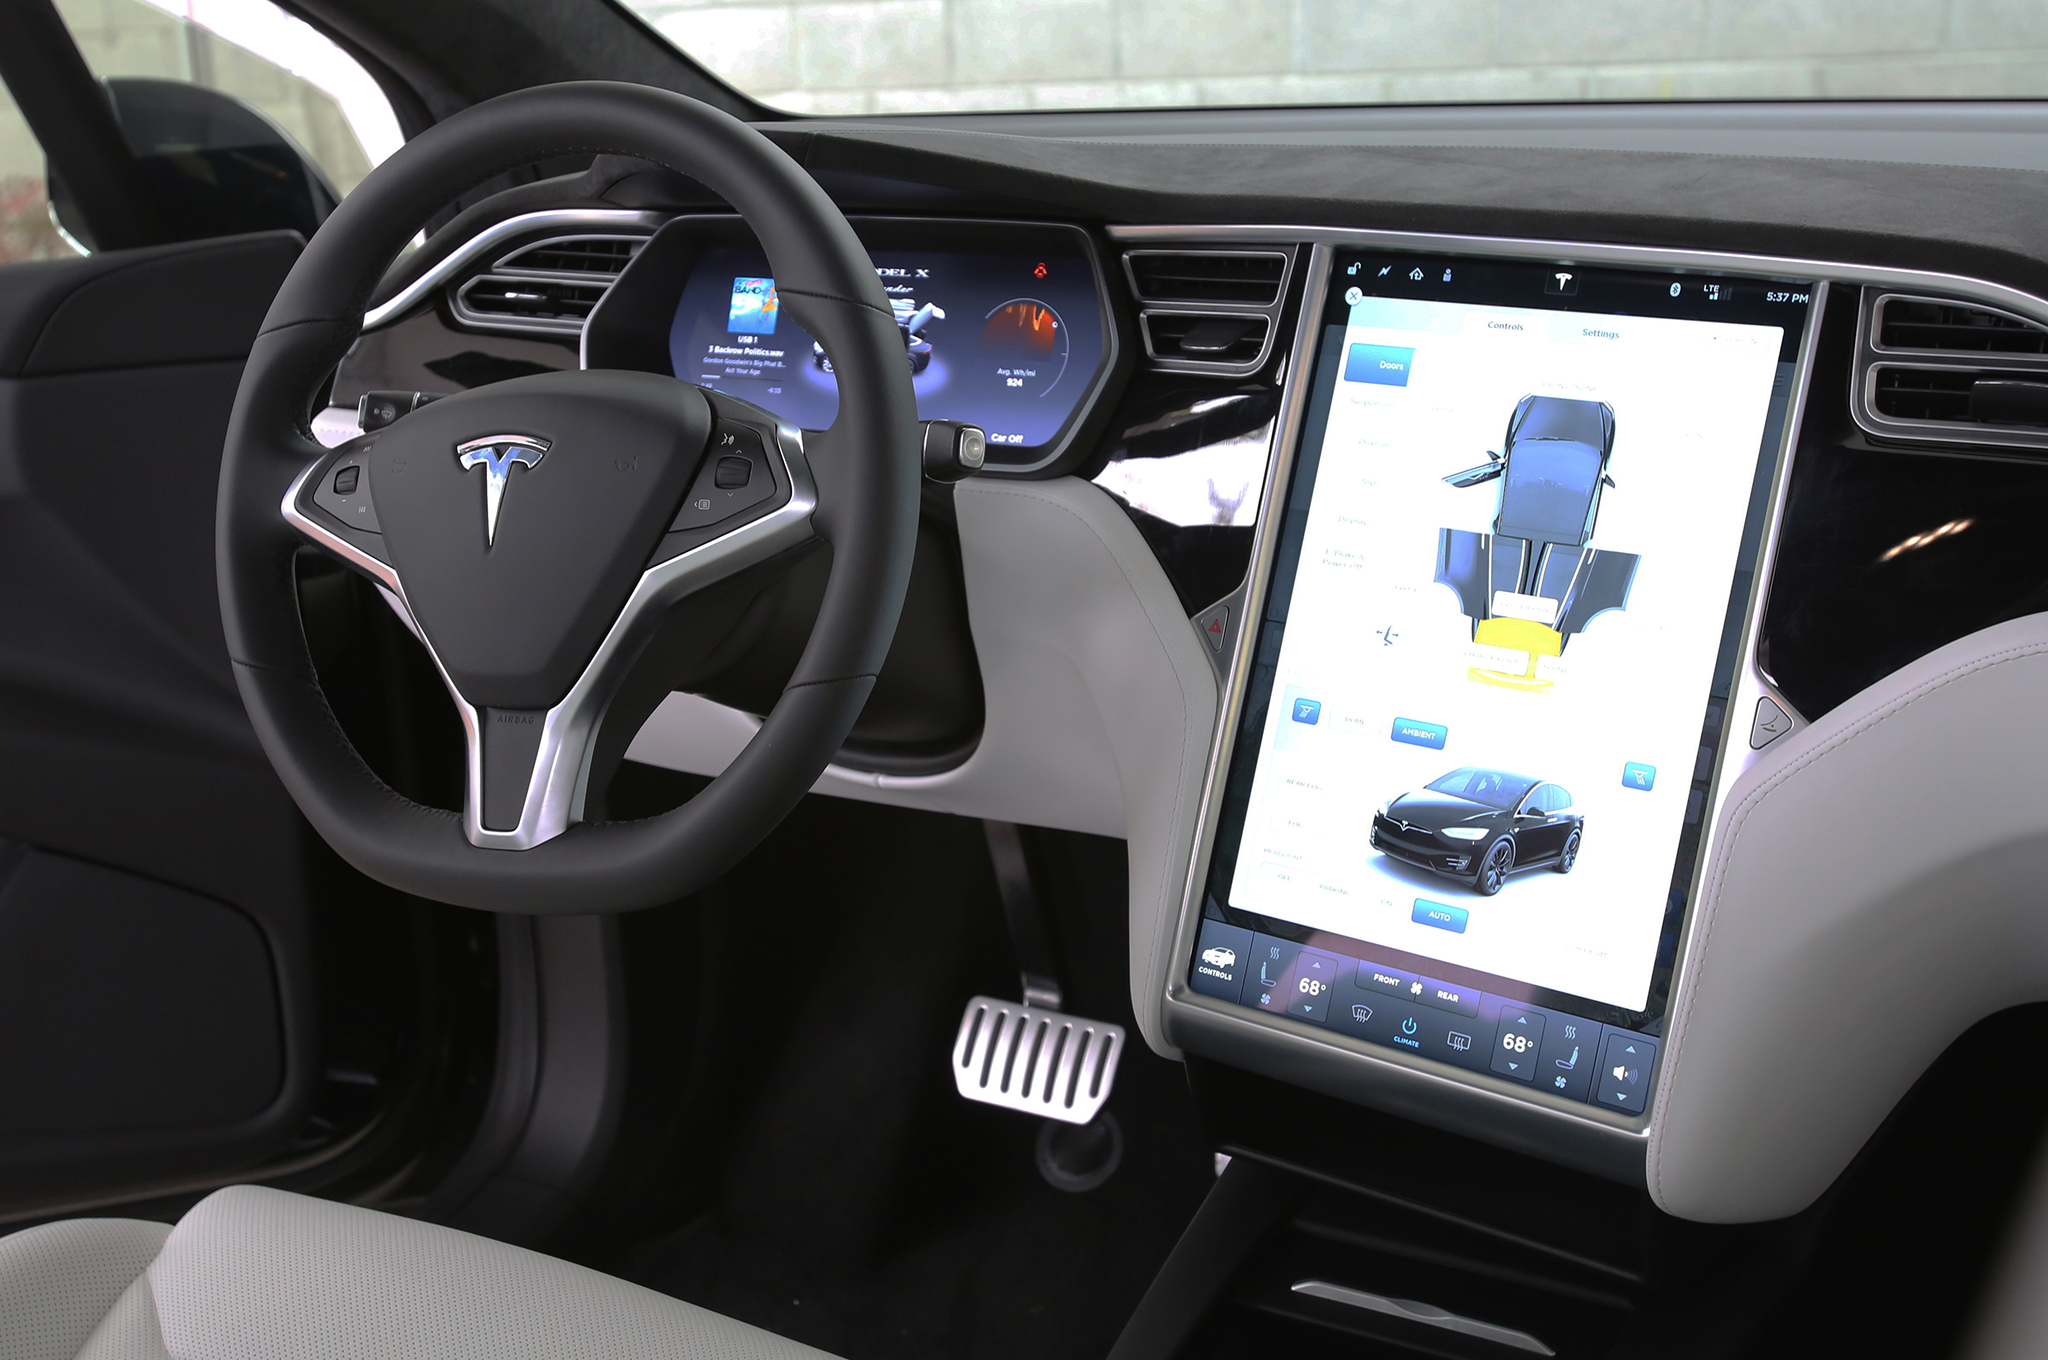 2016 tesla model x interior jpg a tomania. Black Bedroom Furniture Sets. Home Design Ideas